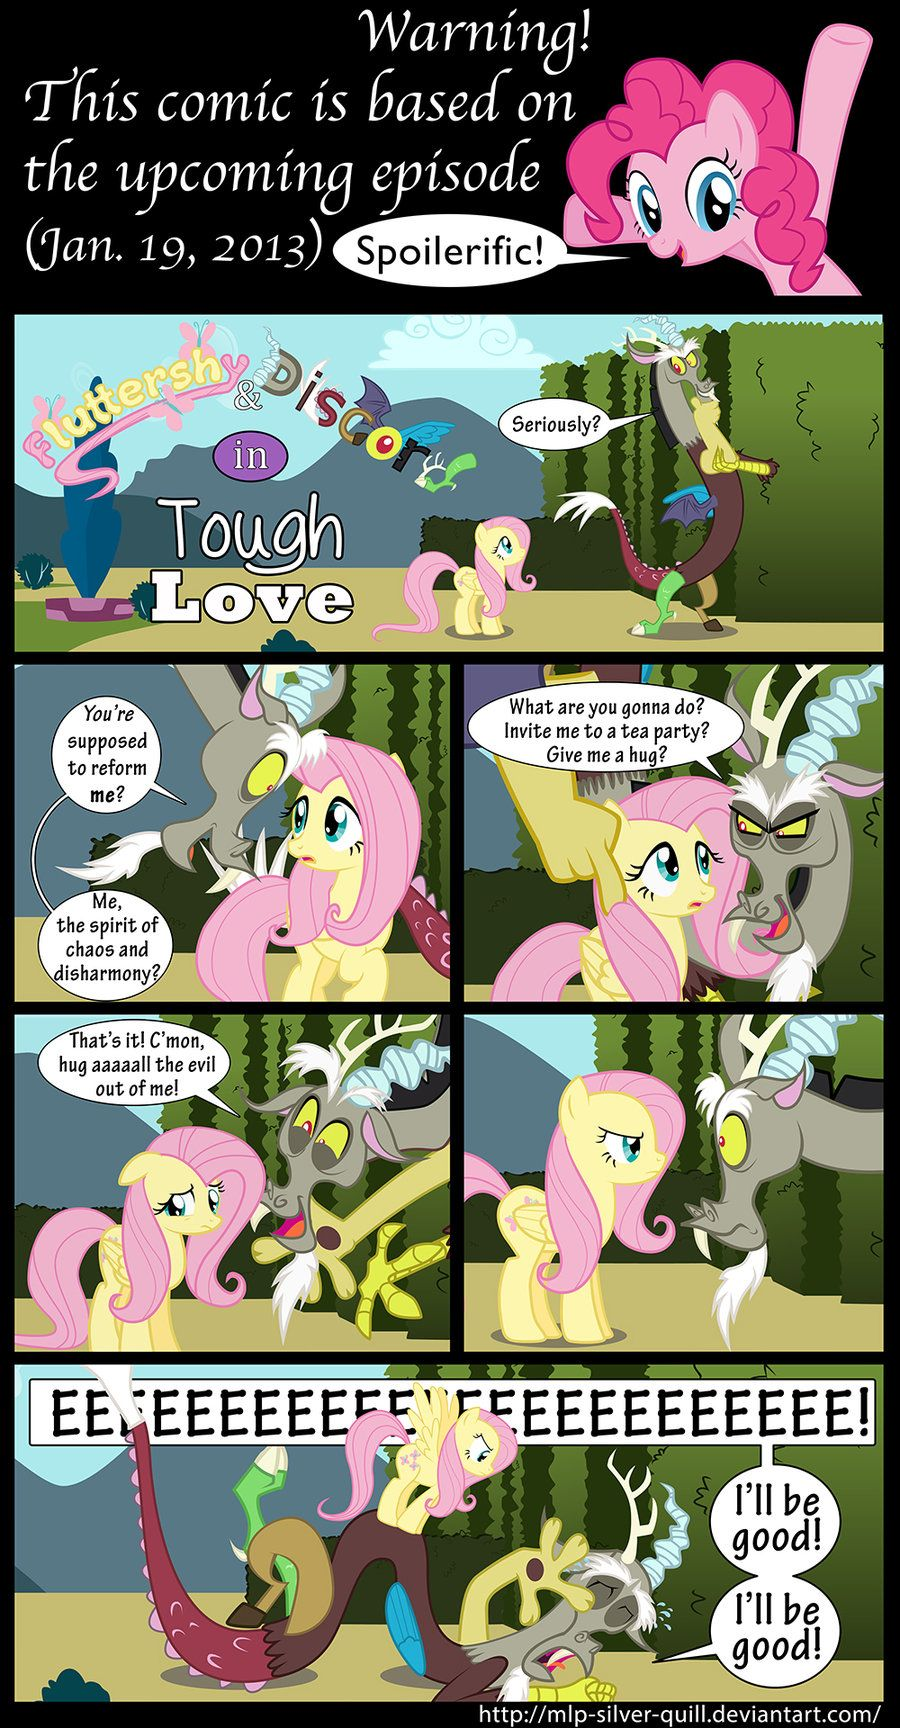 Discord Celestia Comic tough lovemlp-silver-quill.deviantart on @deviantart